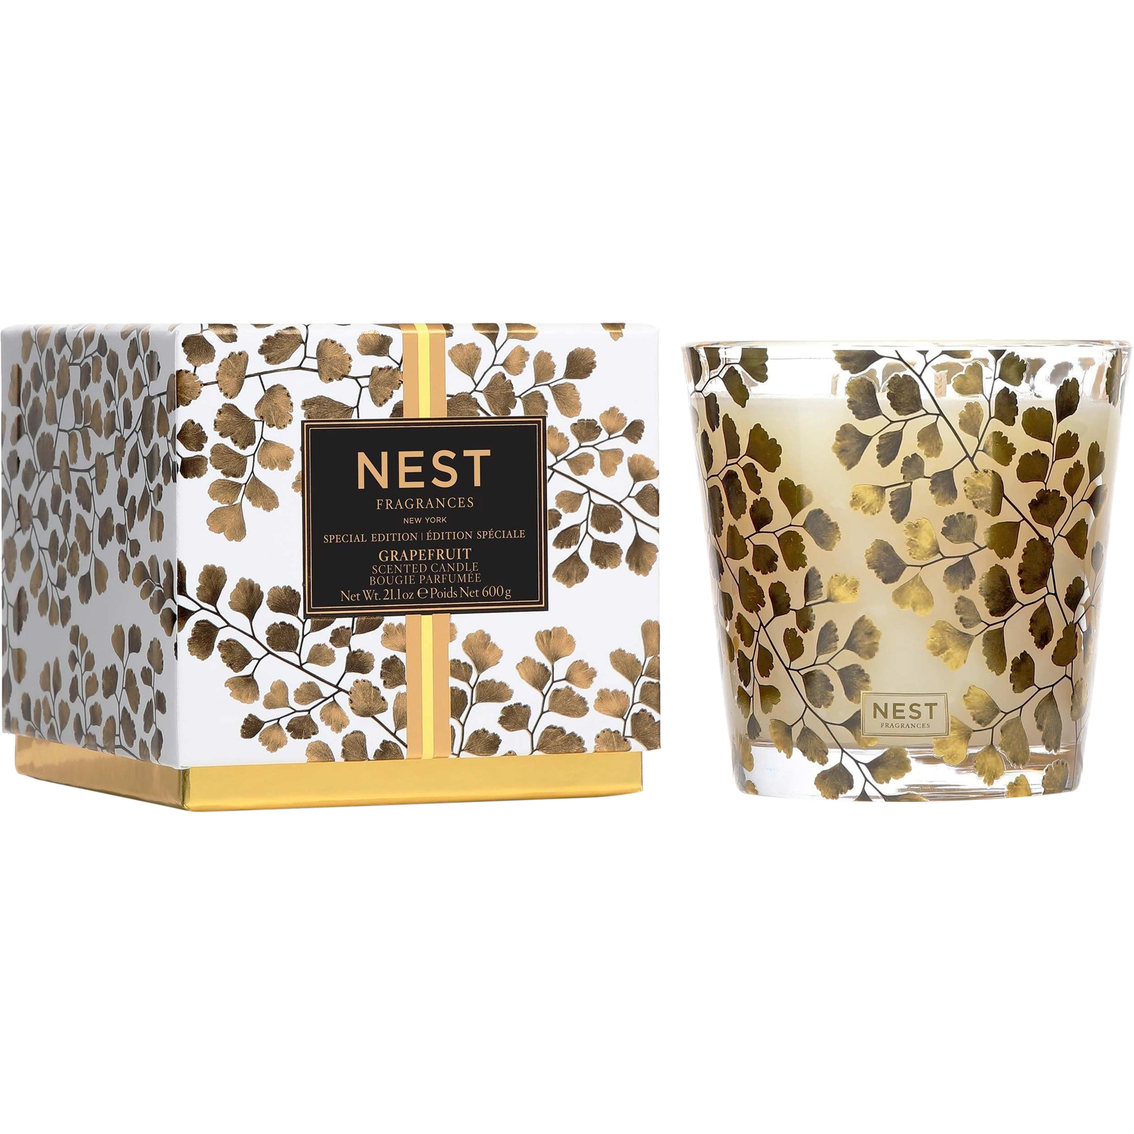 Nest Fragrances Grapefruit Special Edition 3 Wick Candle Candles Home Fragrance Household Shop The Exchange